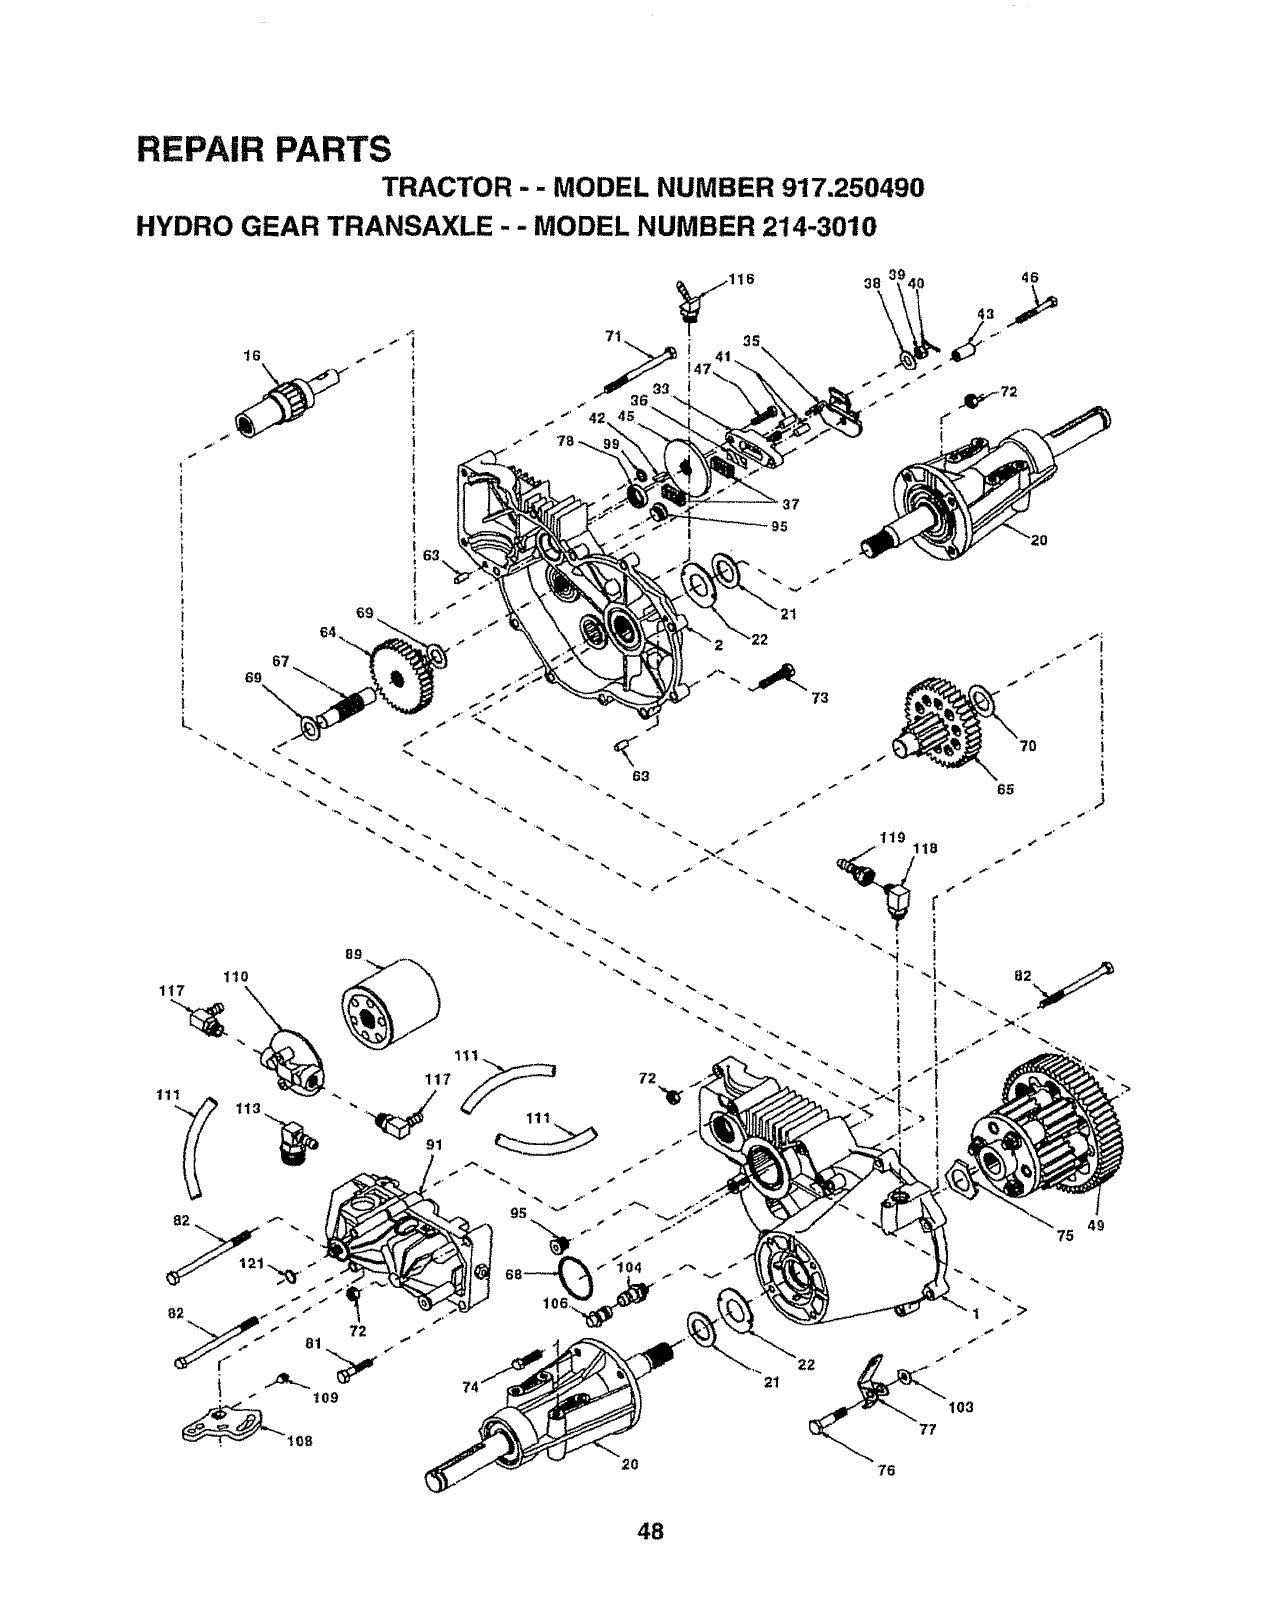 Page 48 of Sears Lawn Mower 917.25049 User Guide